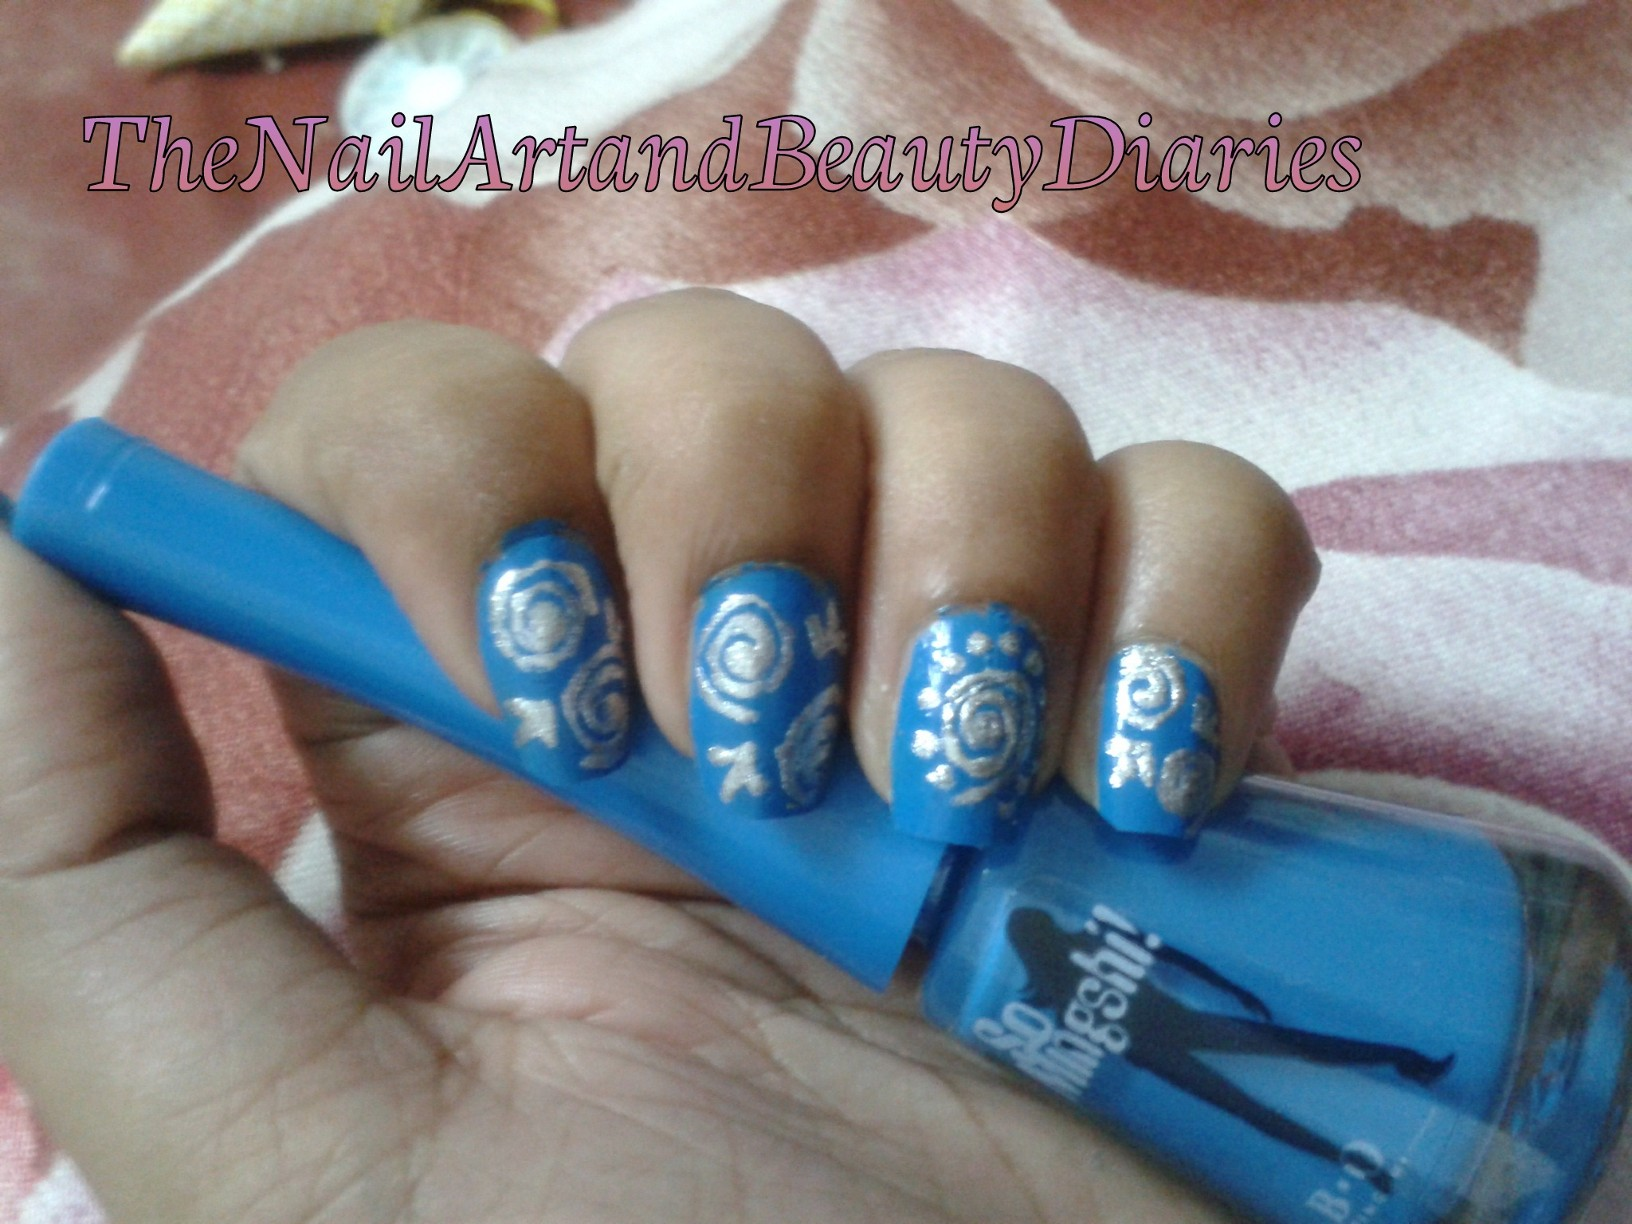 The Blue and Silver Swirls Nail Art | The Nail Art and Beauty Diaries